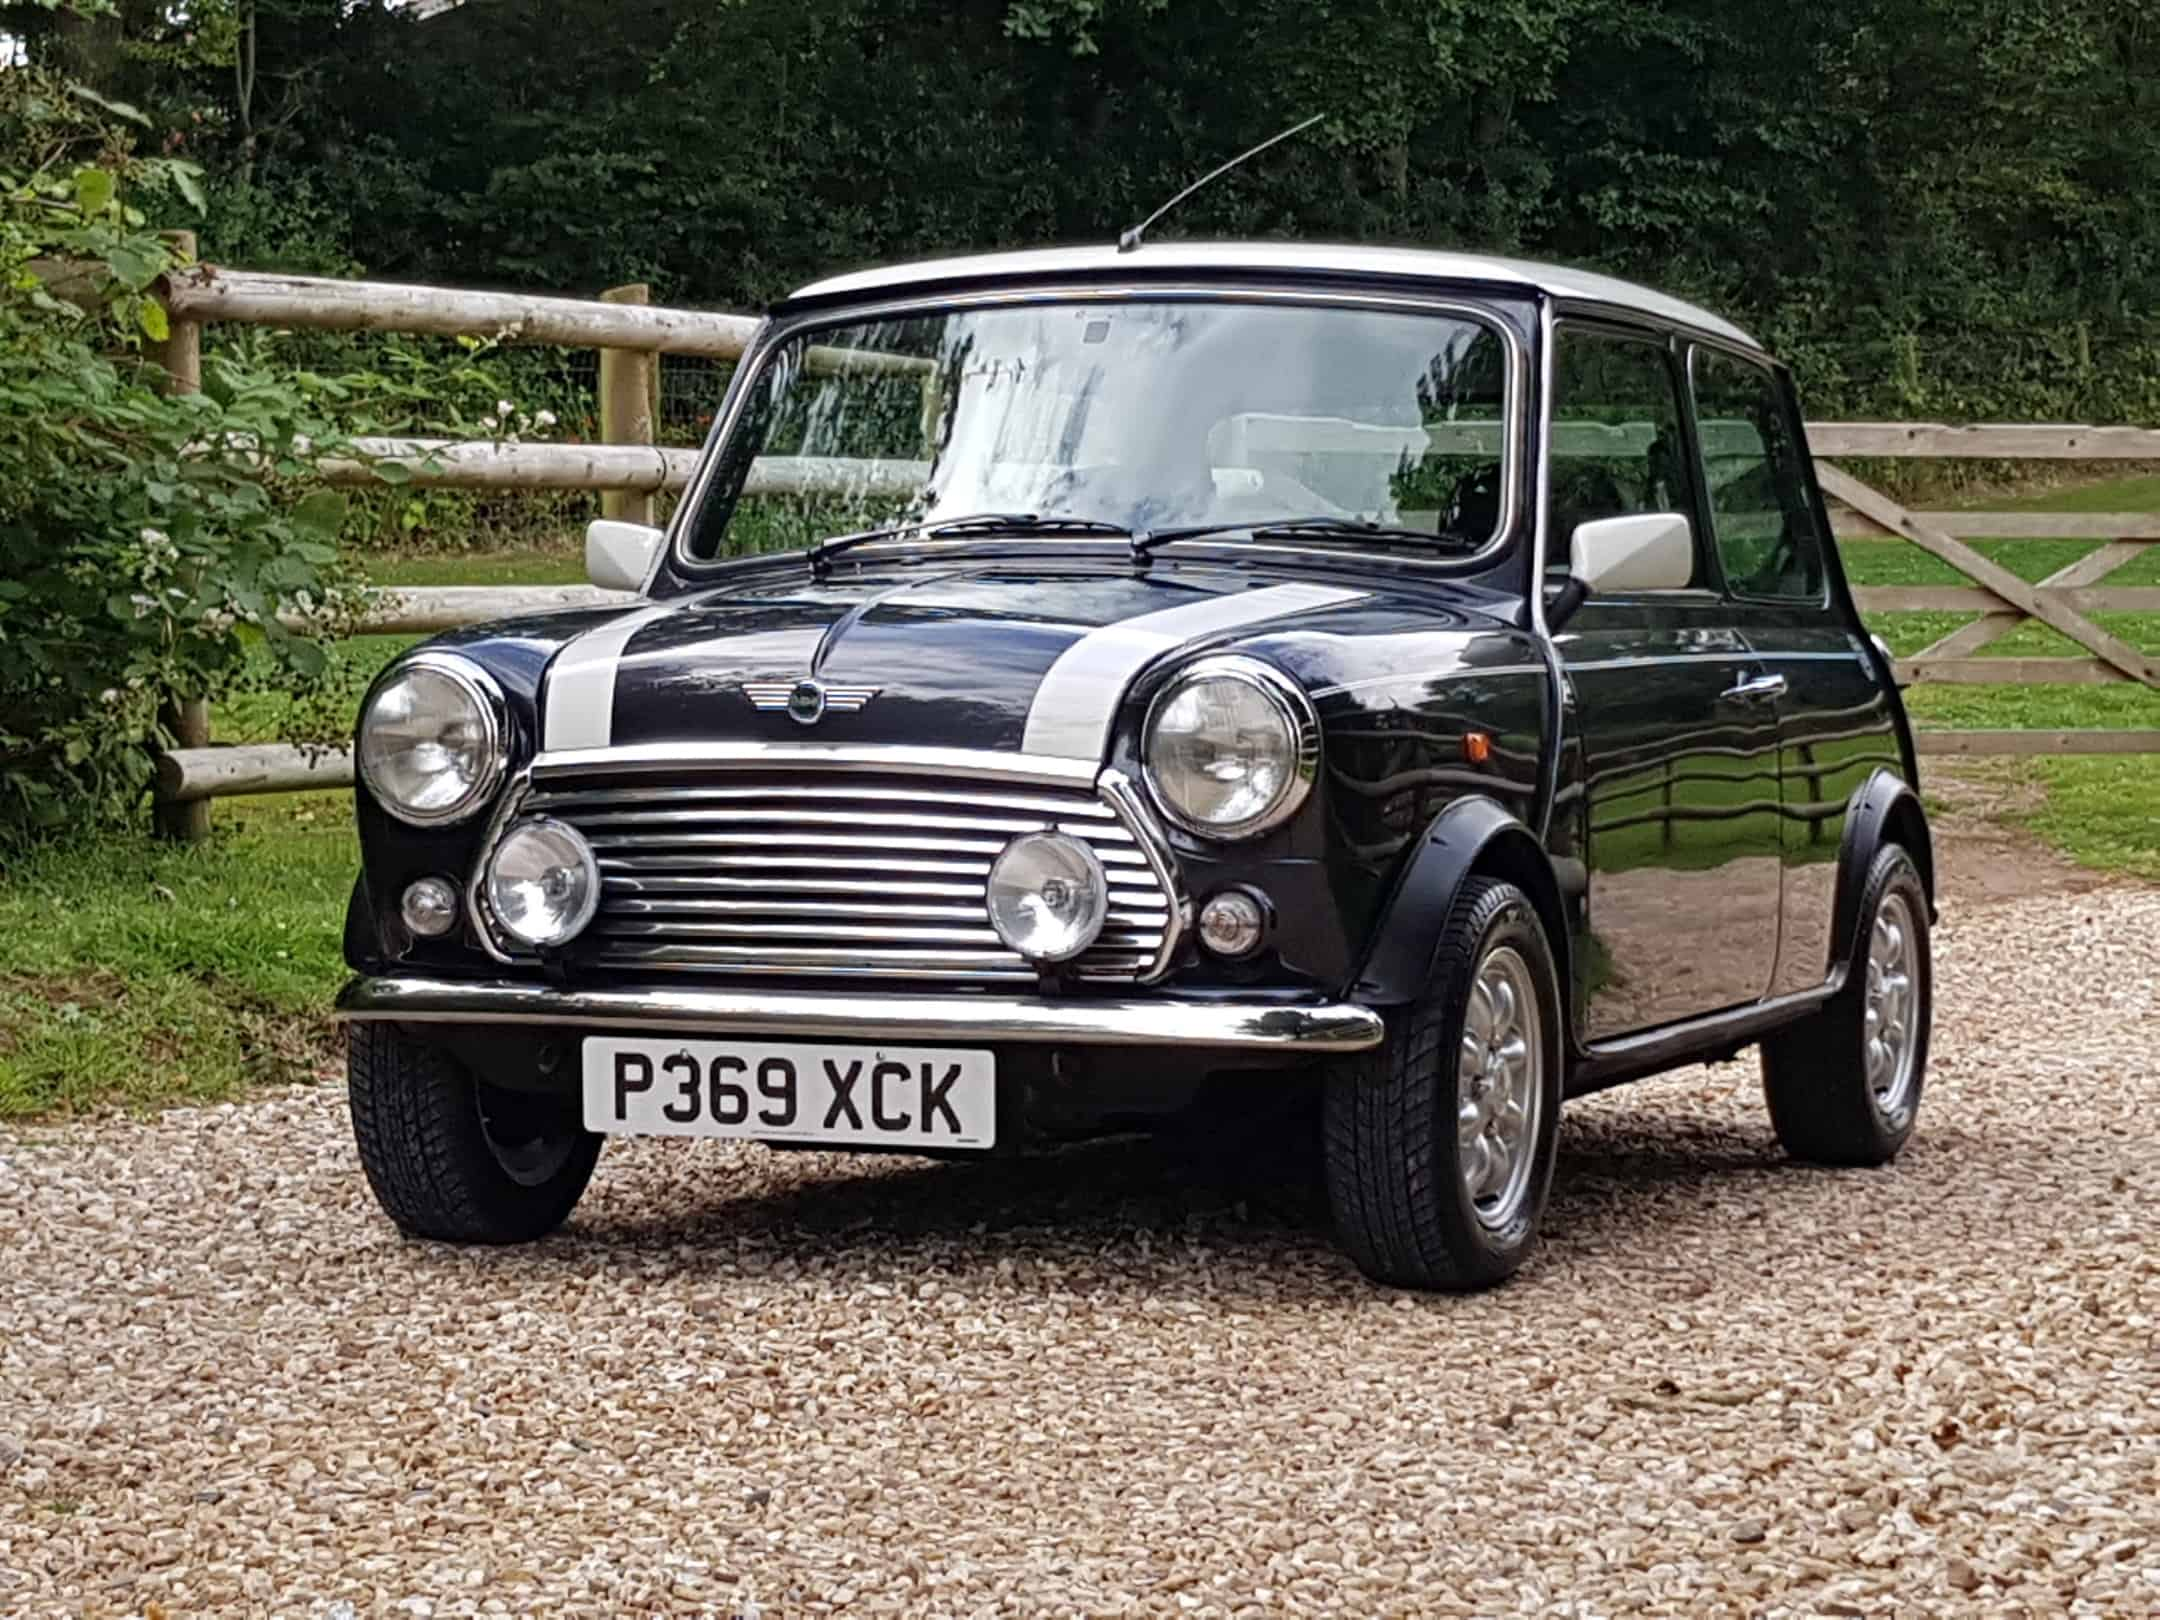 ** NOW SOLD ** 1997 Rover Mini Cooper On 17760 Miles in 23 Years!